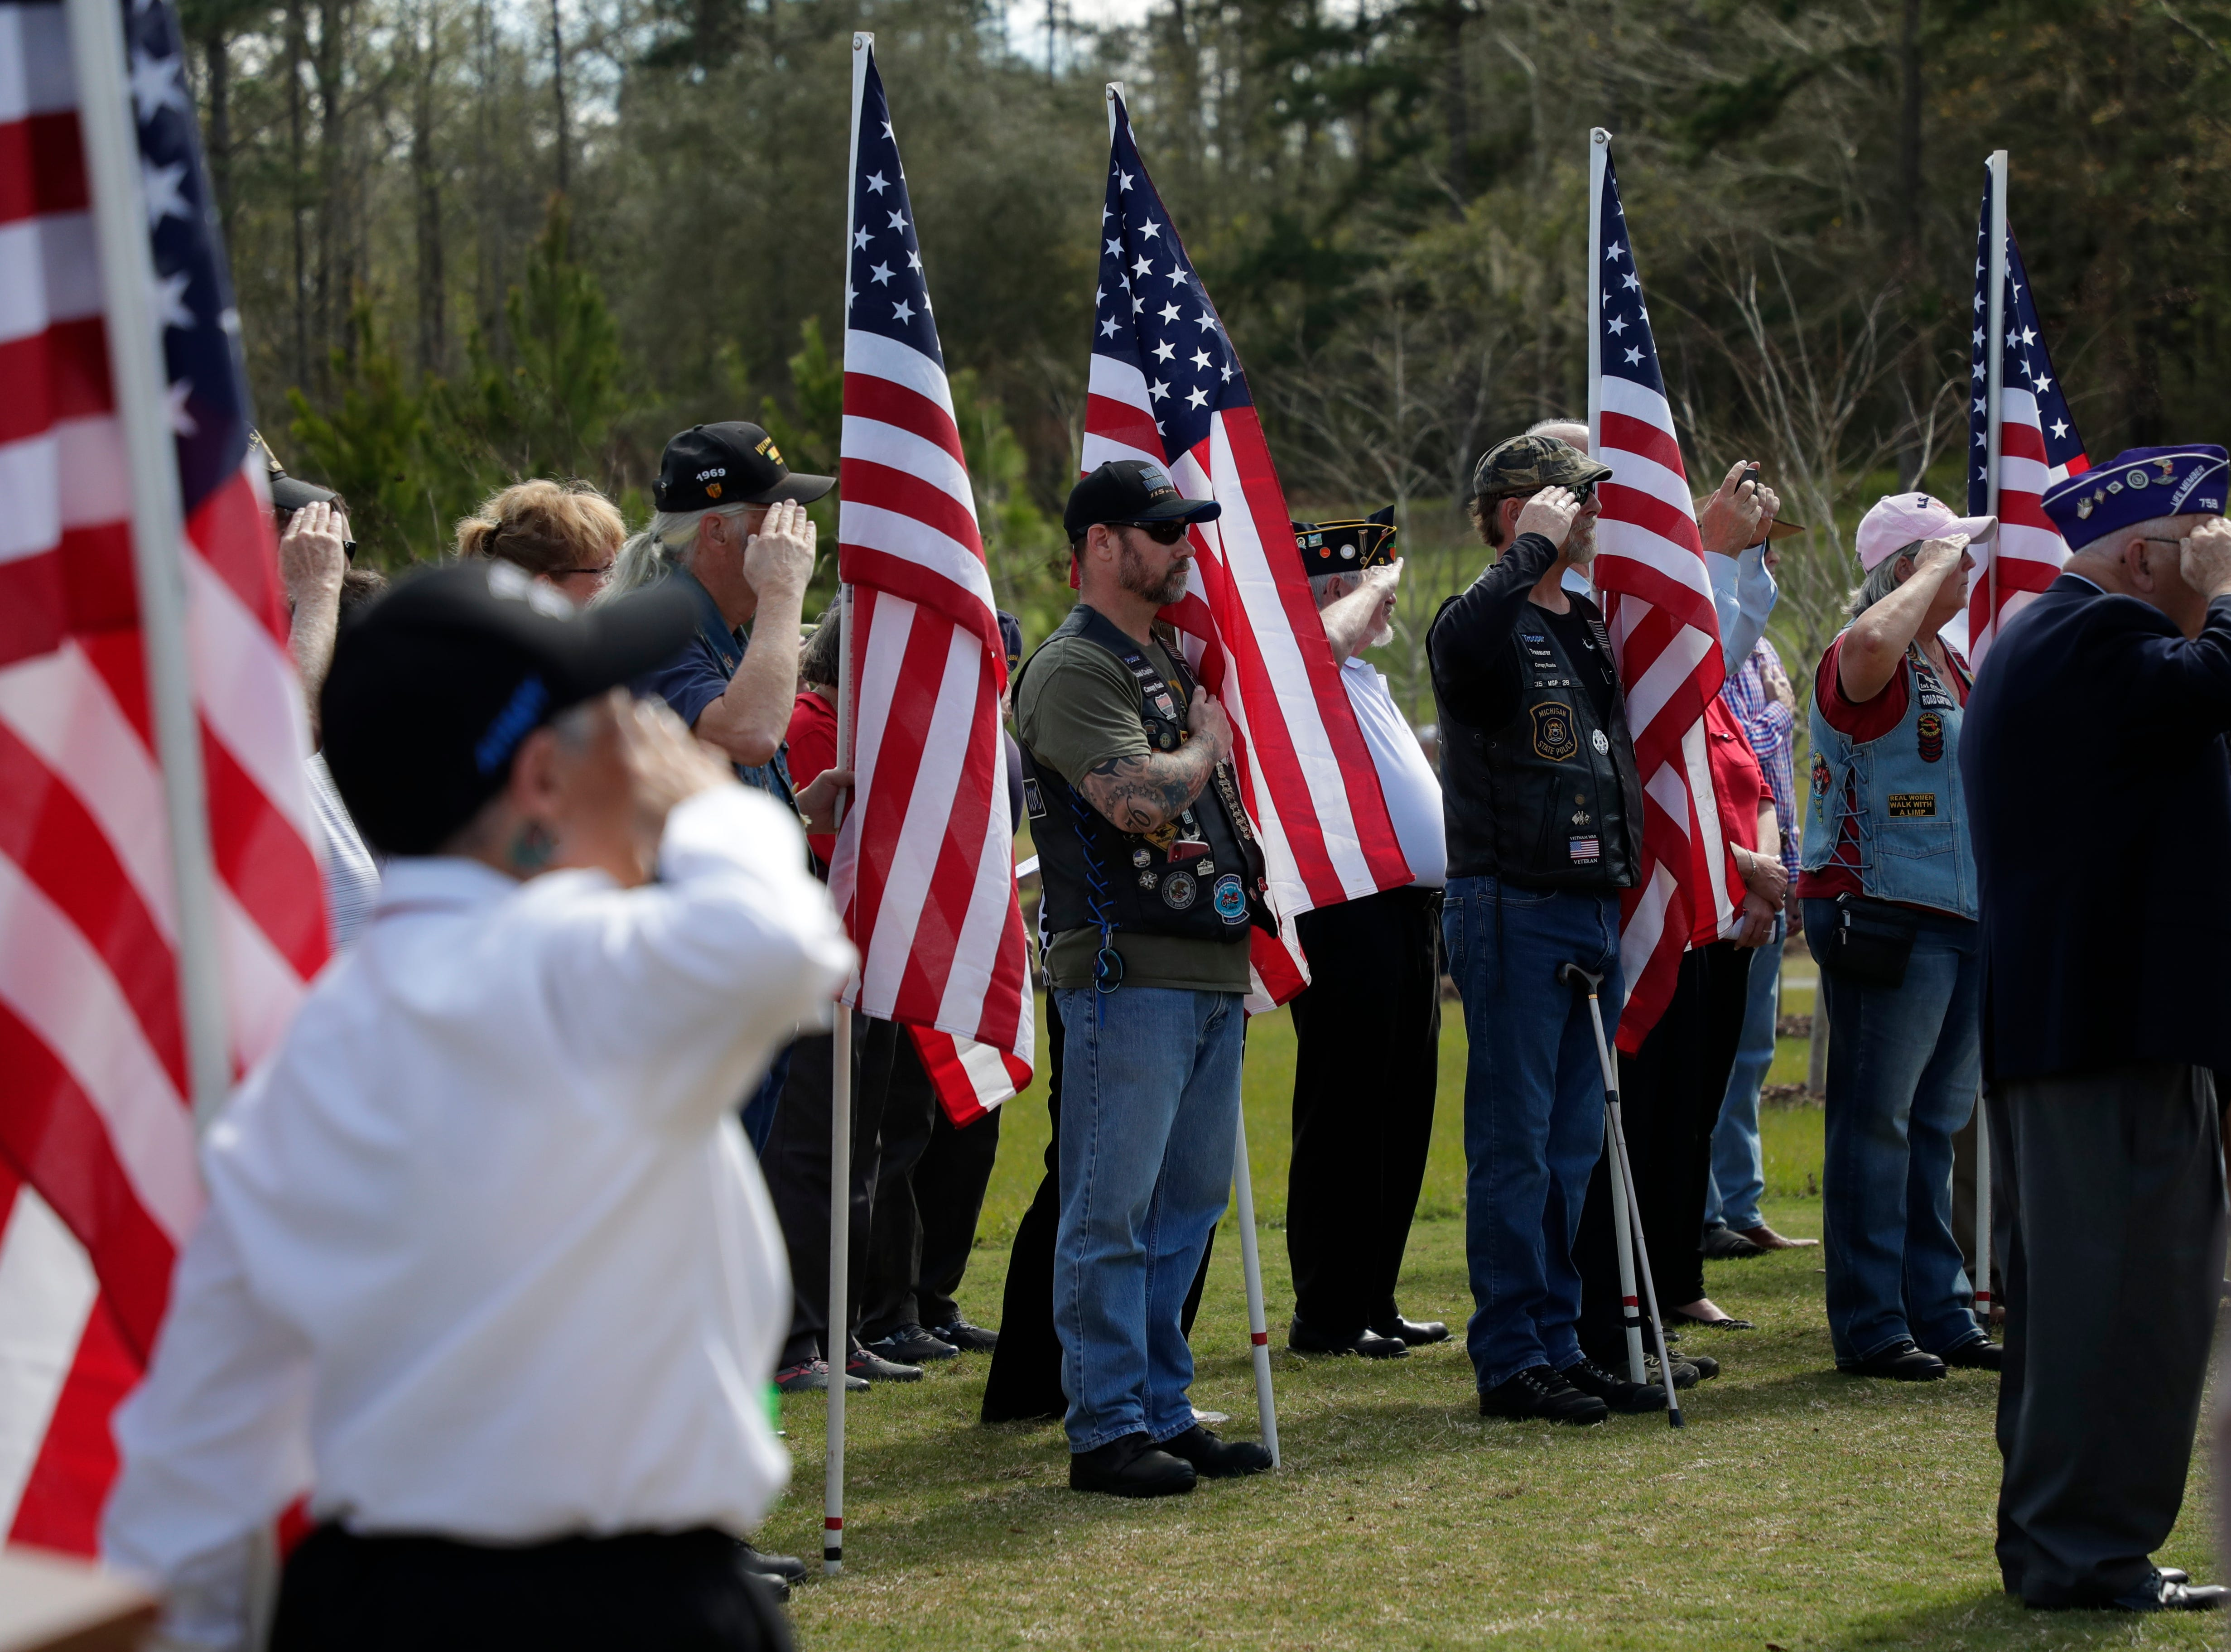 A funeral was held at the Tallahassee National Cemetery honoring Earl Paul Baum, a sailor who was killed in Pearl Harbor, Friday, March 8, 2019.